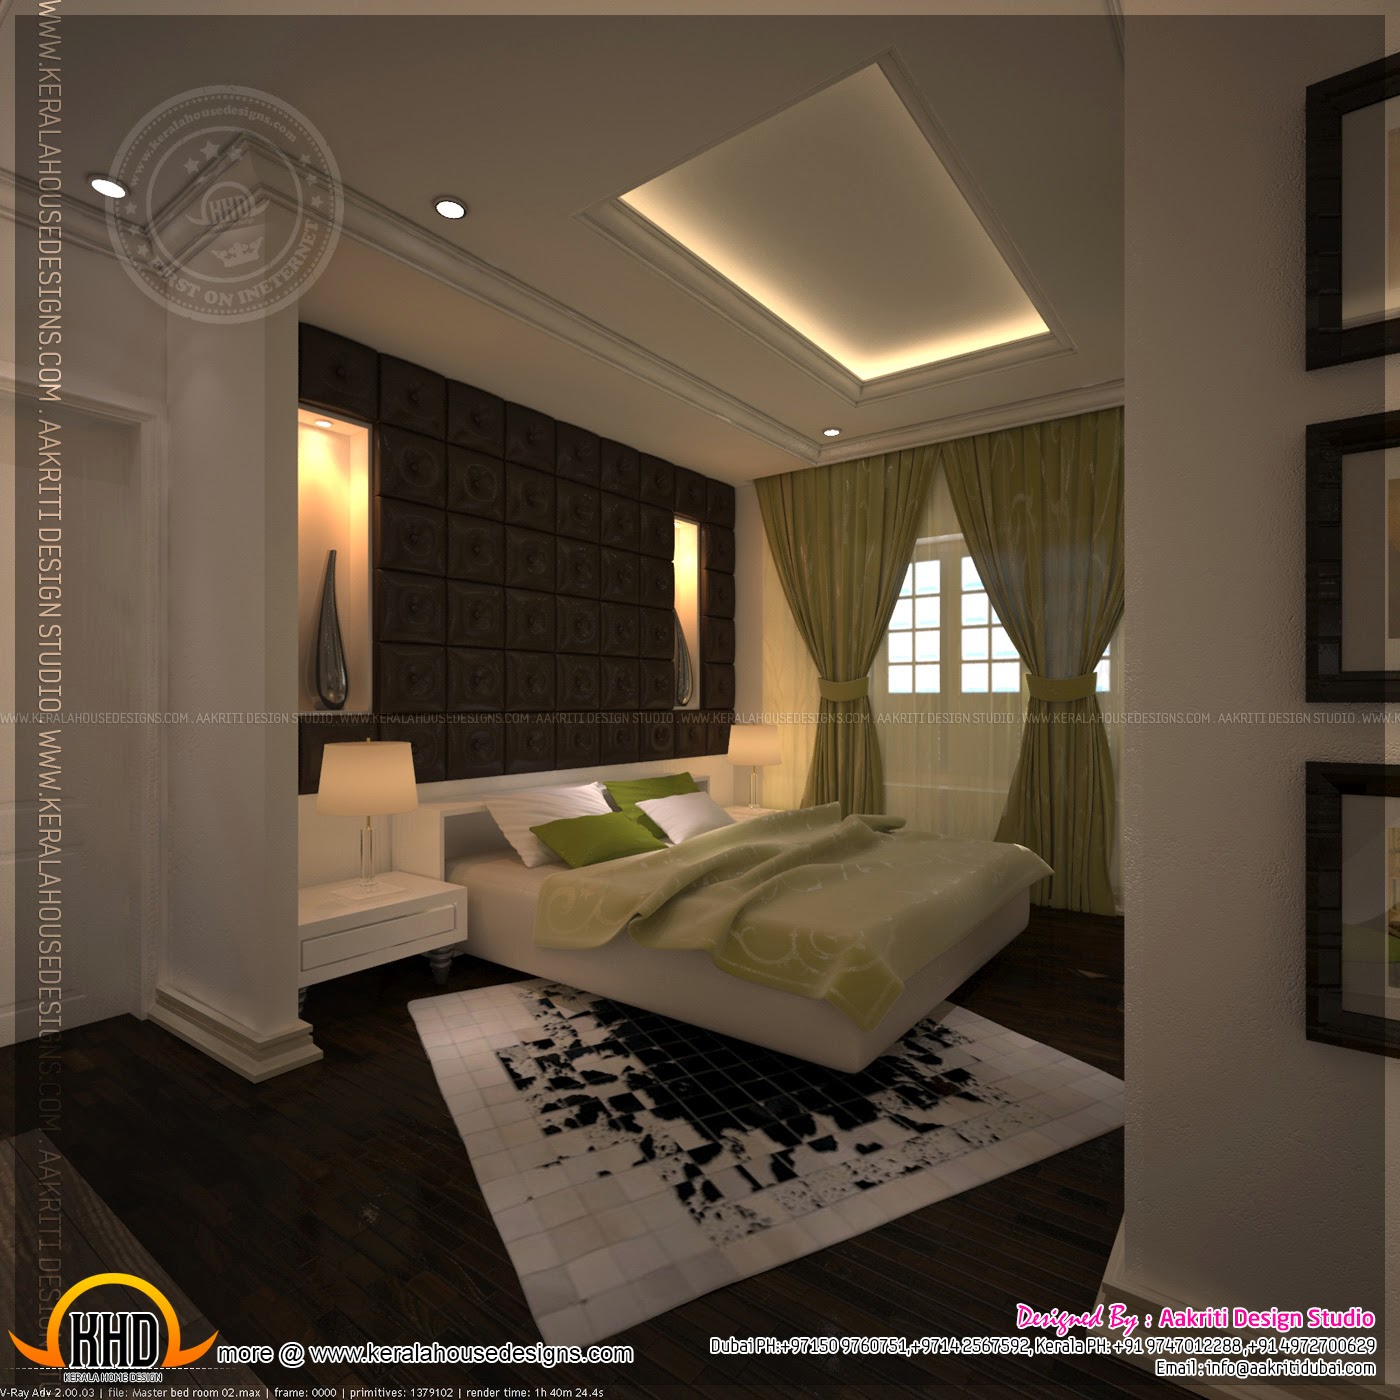 April 2015 home kerala plans - Design of bedroom ...